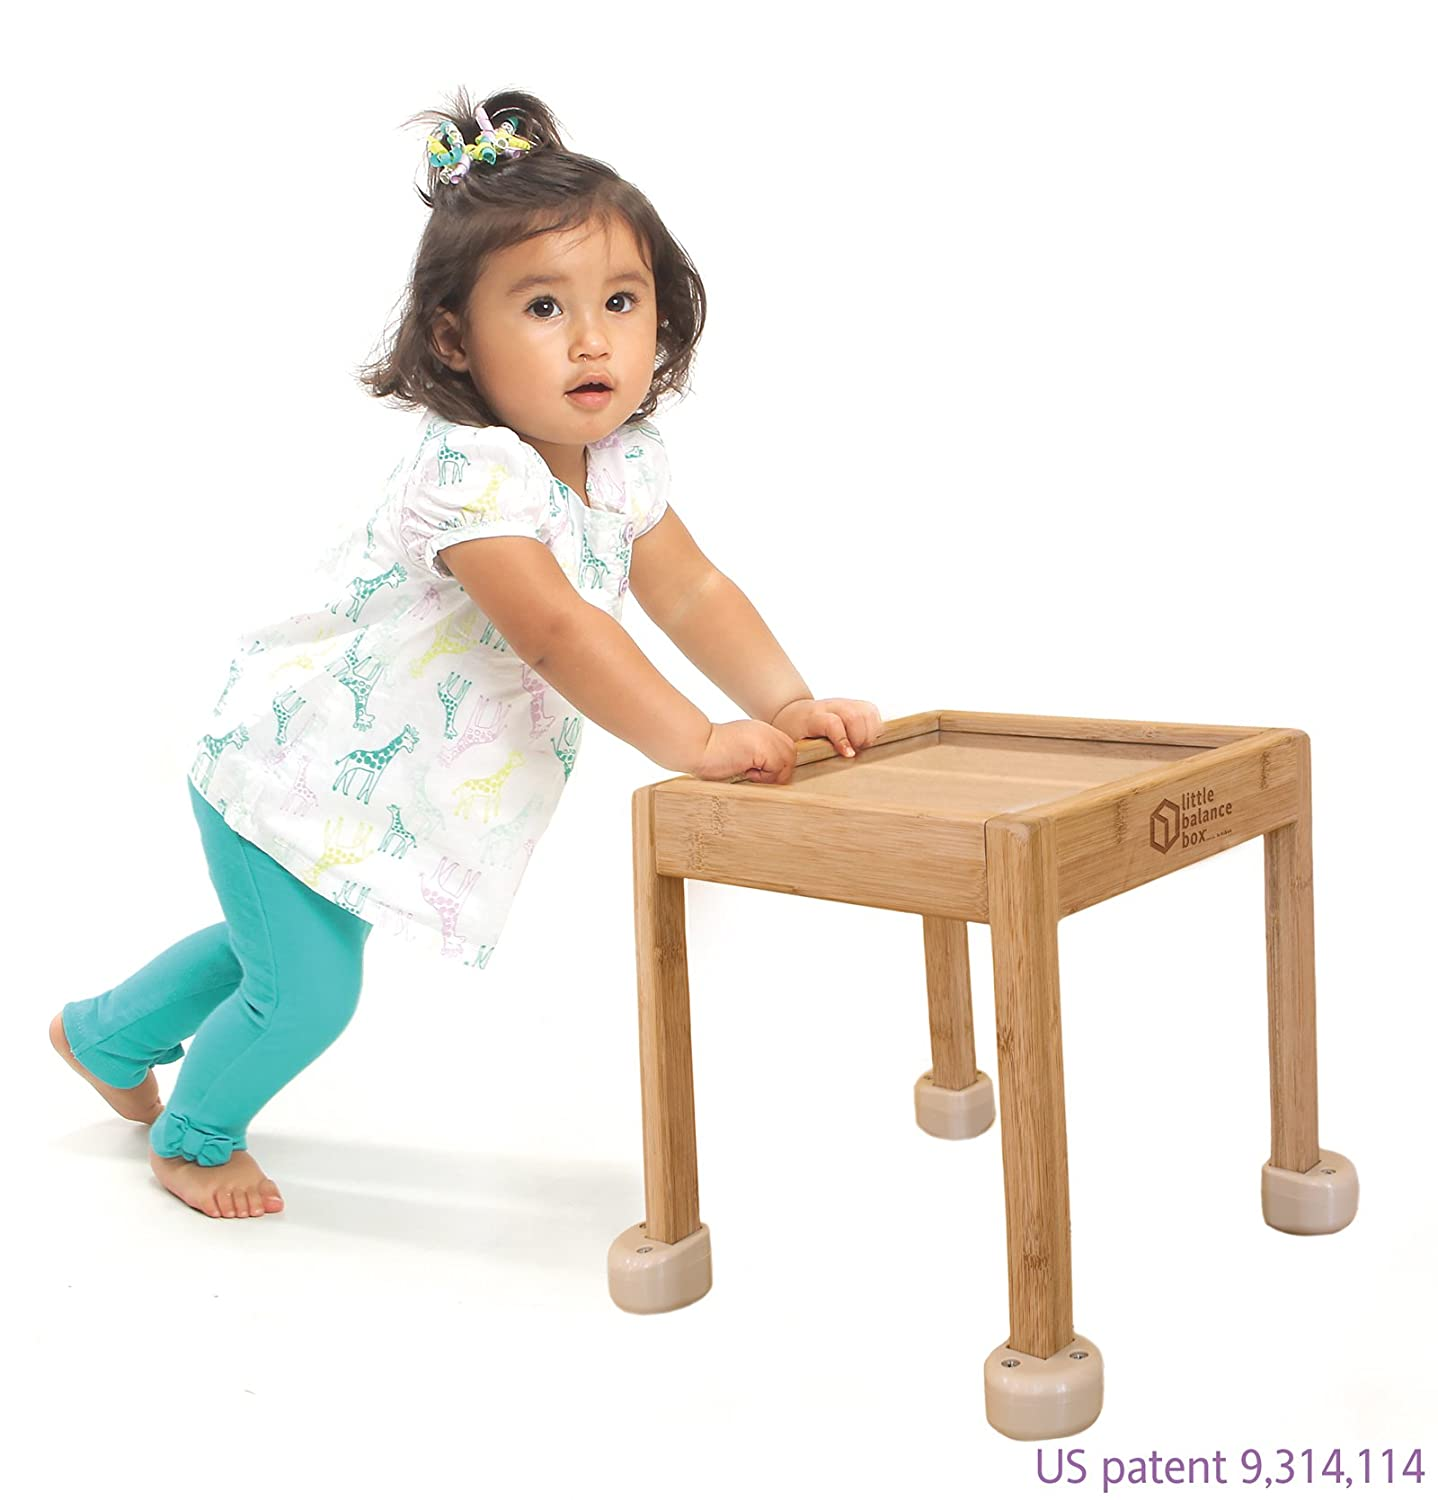 Little Balance Box 2-in-1: No Wheels Spring Feet, Girl Boy Best Baby Walker Push Stand Toys, Toddler Activity Table, Award Winning (Beige)